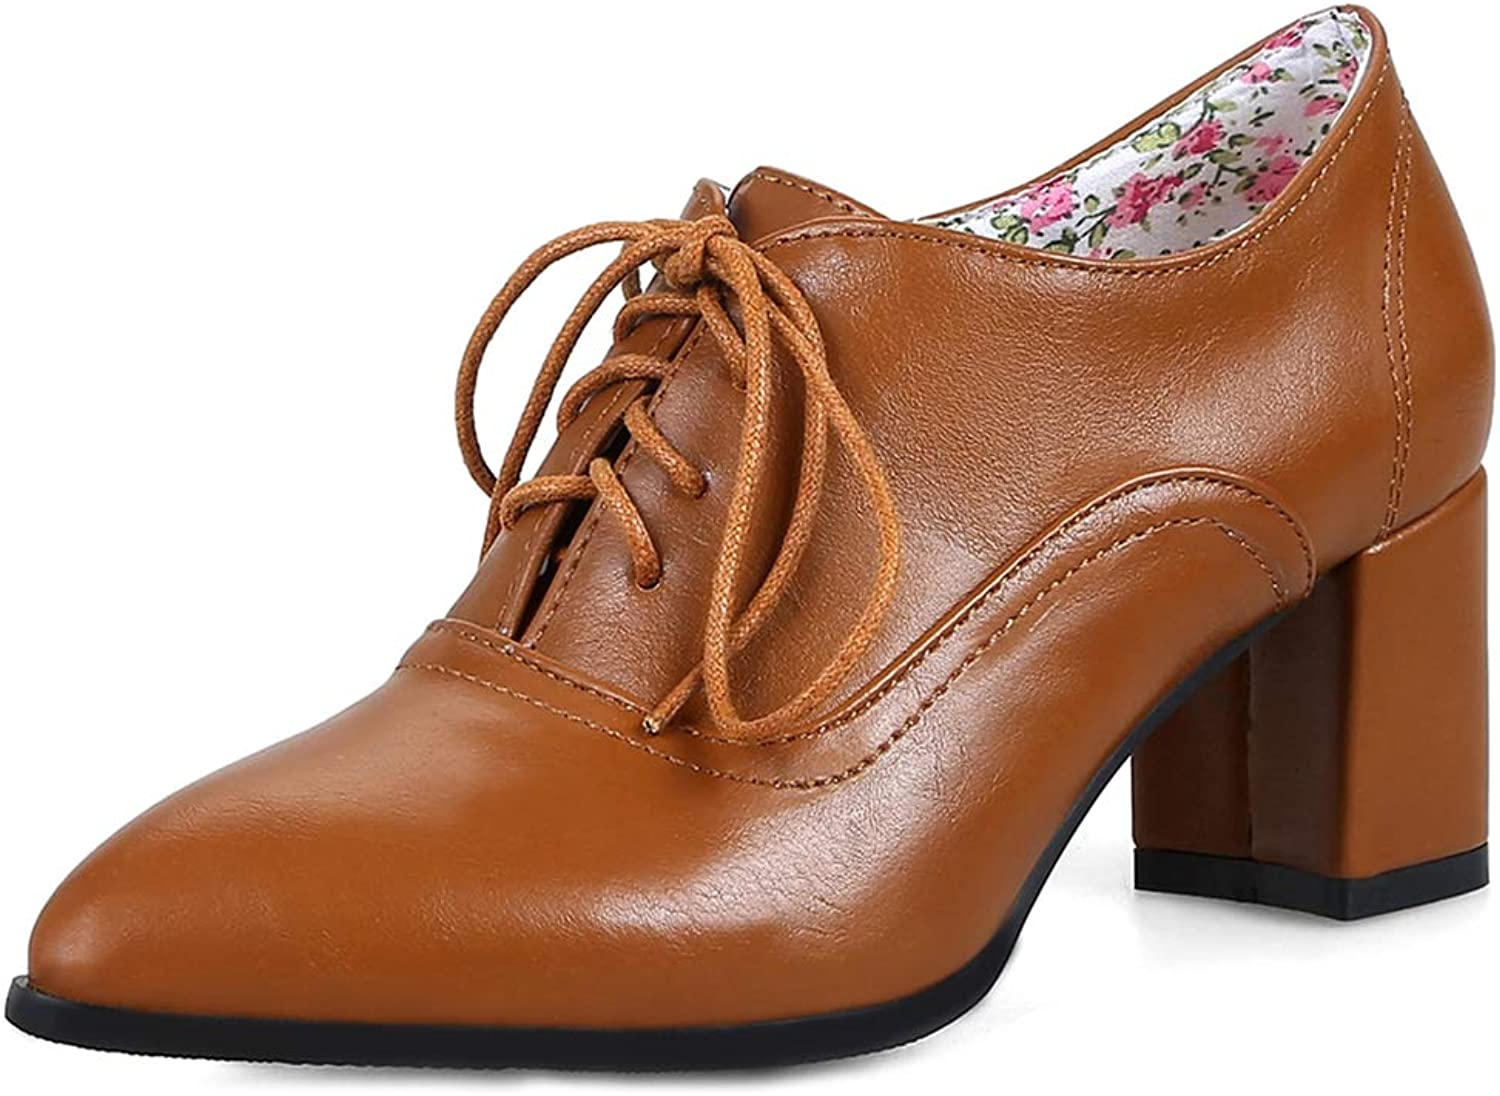 GIY Women's Pointed Toe Oxford shoes Wingtip Lace-up Platform Chunky High Block Heel Dress Pump Brogues